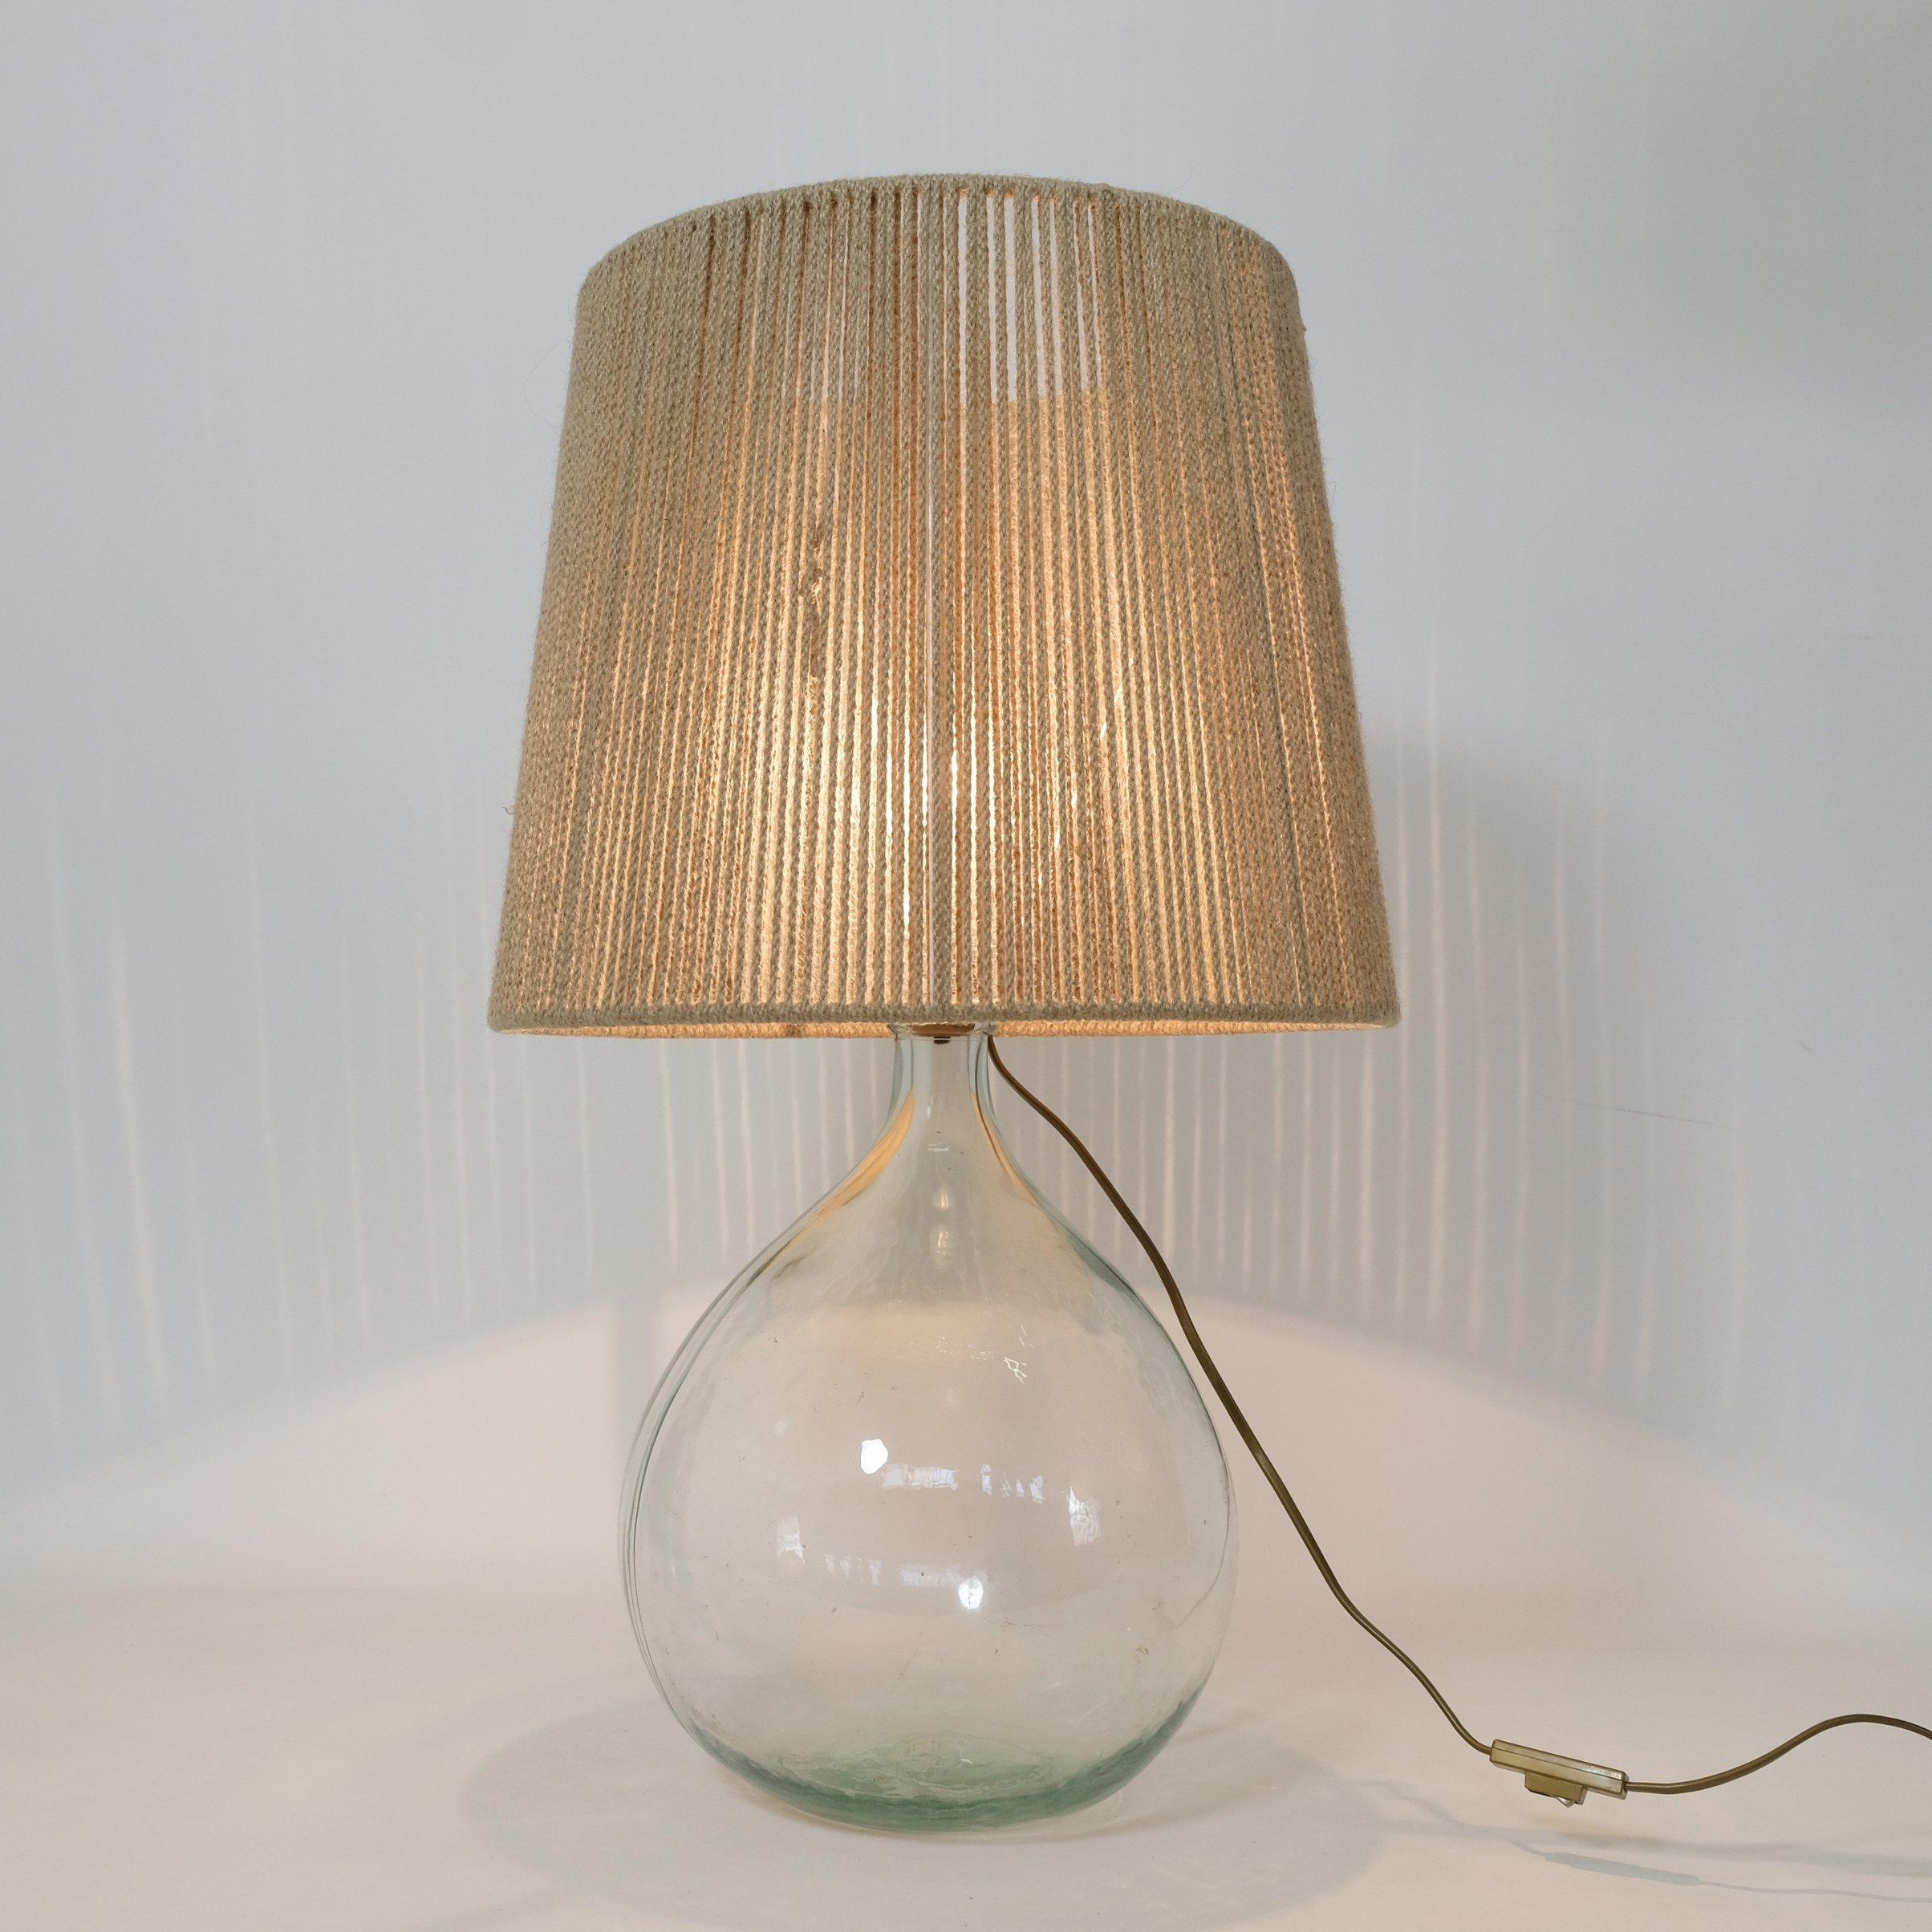 Table Lamp With A Rope Shade 1970s 1980s 139647